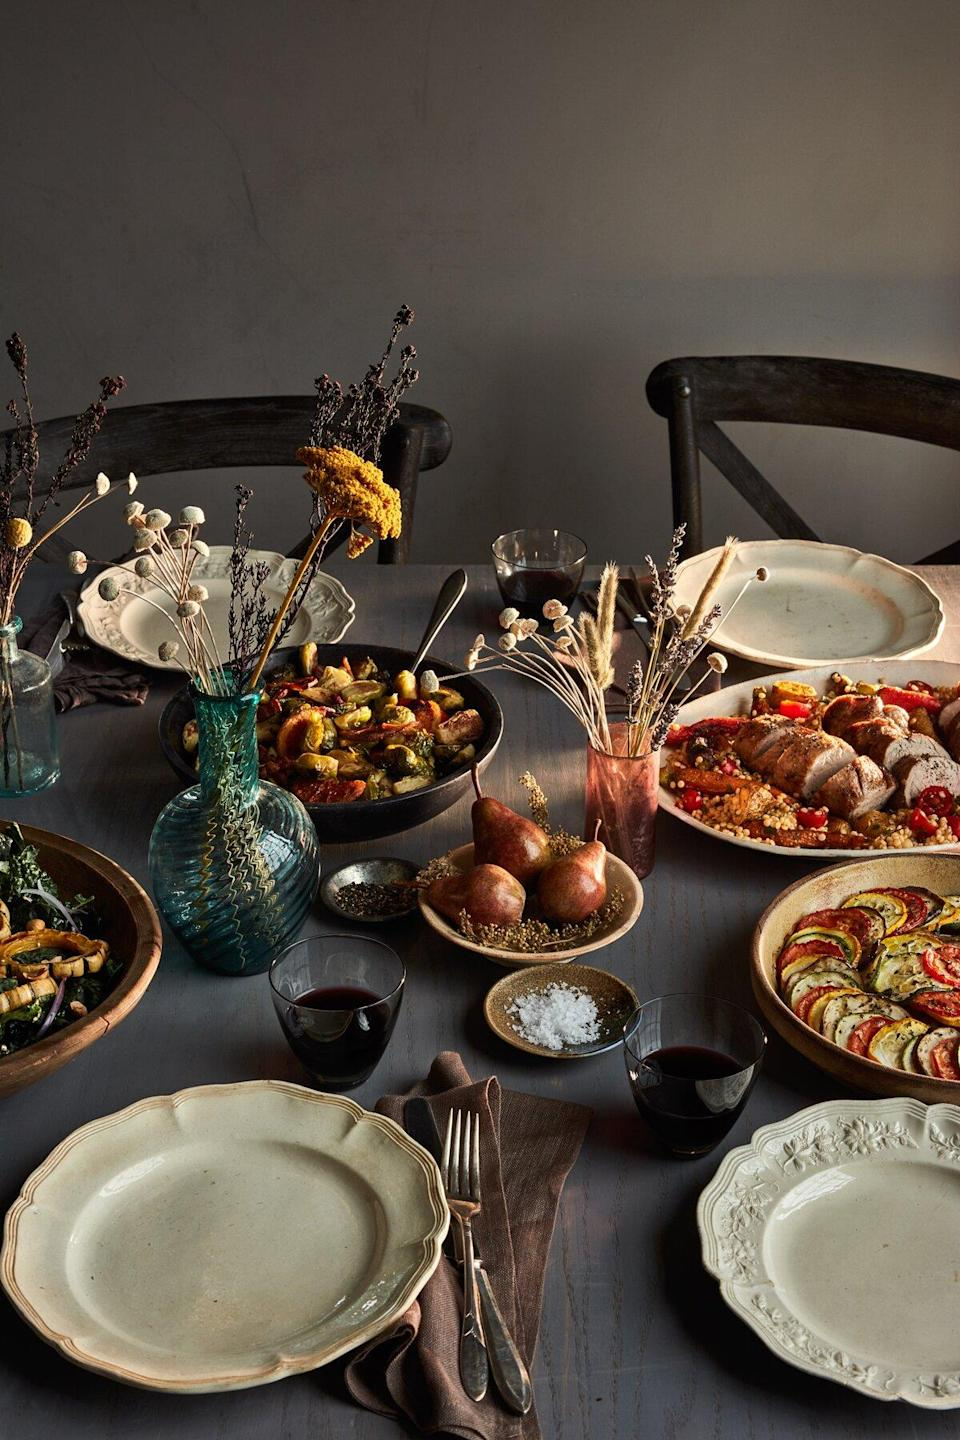 fall potluck table setting with food ready for serving